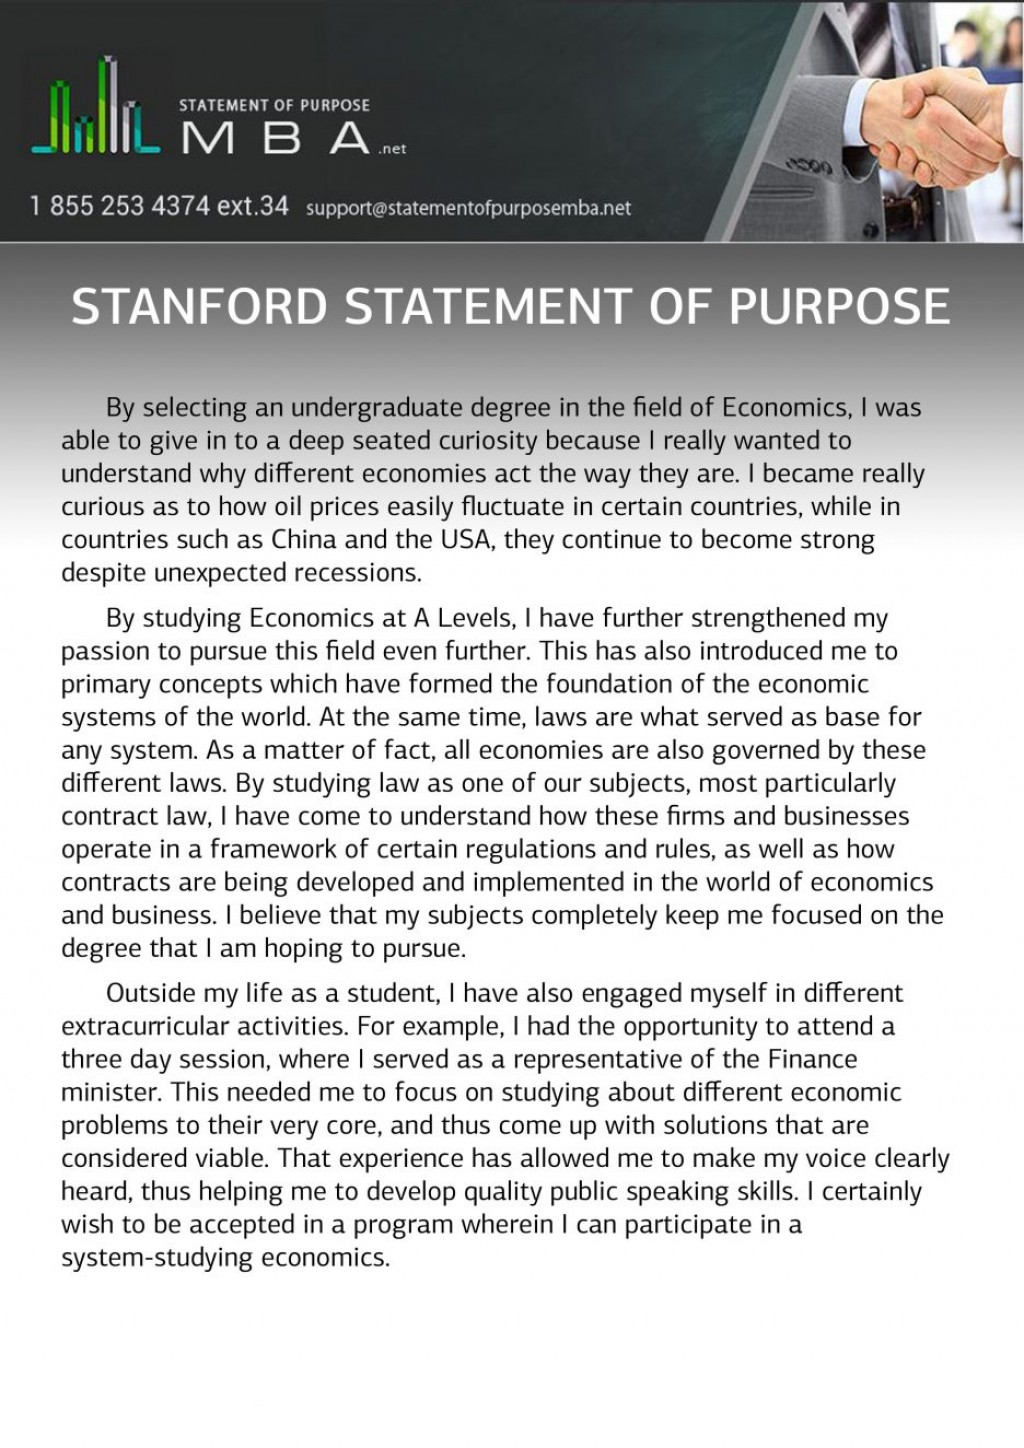 011 Stanford Essays Roommate Statement Purpose Sample Essay Accepted Examples That Worked Tips Example Prompt College Confidential Of Advice Reddit Facebook Stunning Large